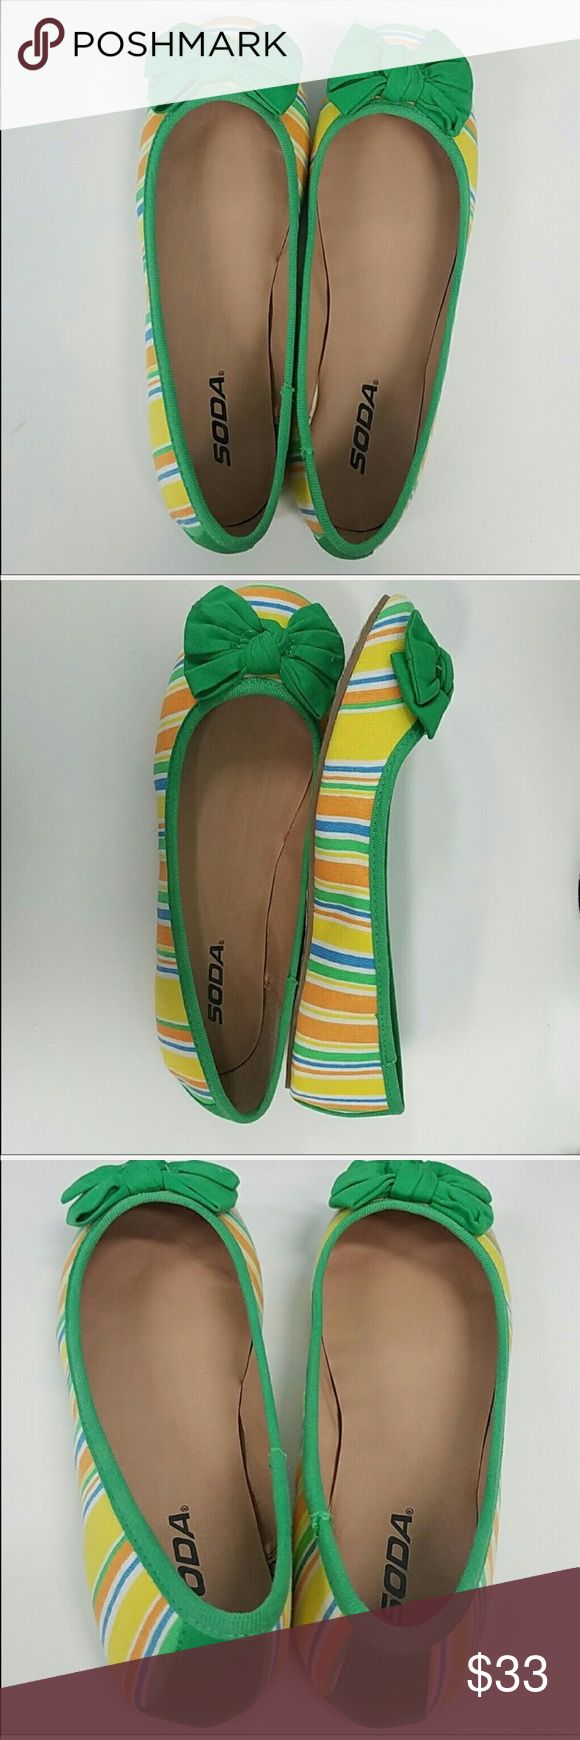 New in box ballet flats Look cute yet feel comfortable in the office in these green/yellow striped ballet flats. Offers are welcome but will not be discussed in comments. Bundle & I'll send you a private offer! Shoes Flats & Loafers